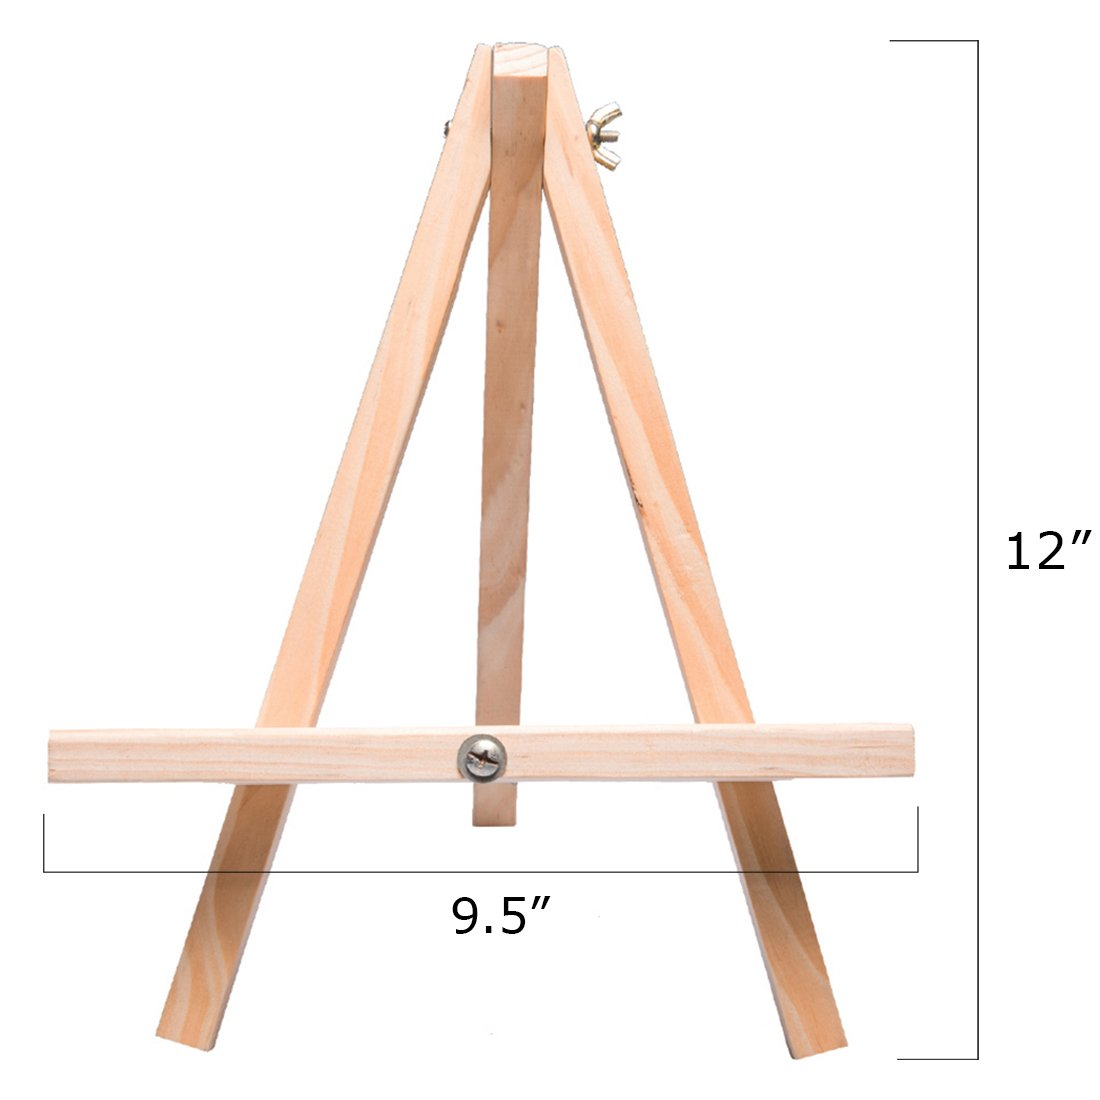 Tosnail 12'' Tall Natural Wood Tripod Easel Photo Painting Display - 5 Pack by Tosnail (Image #1)